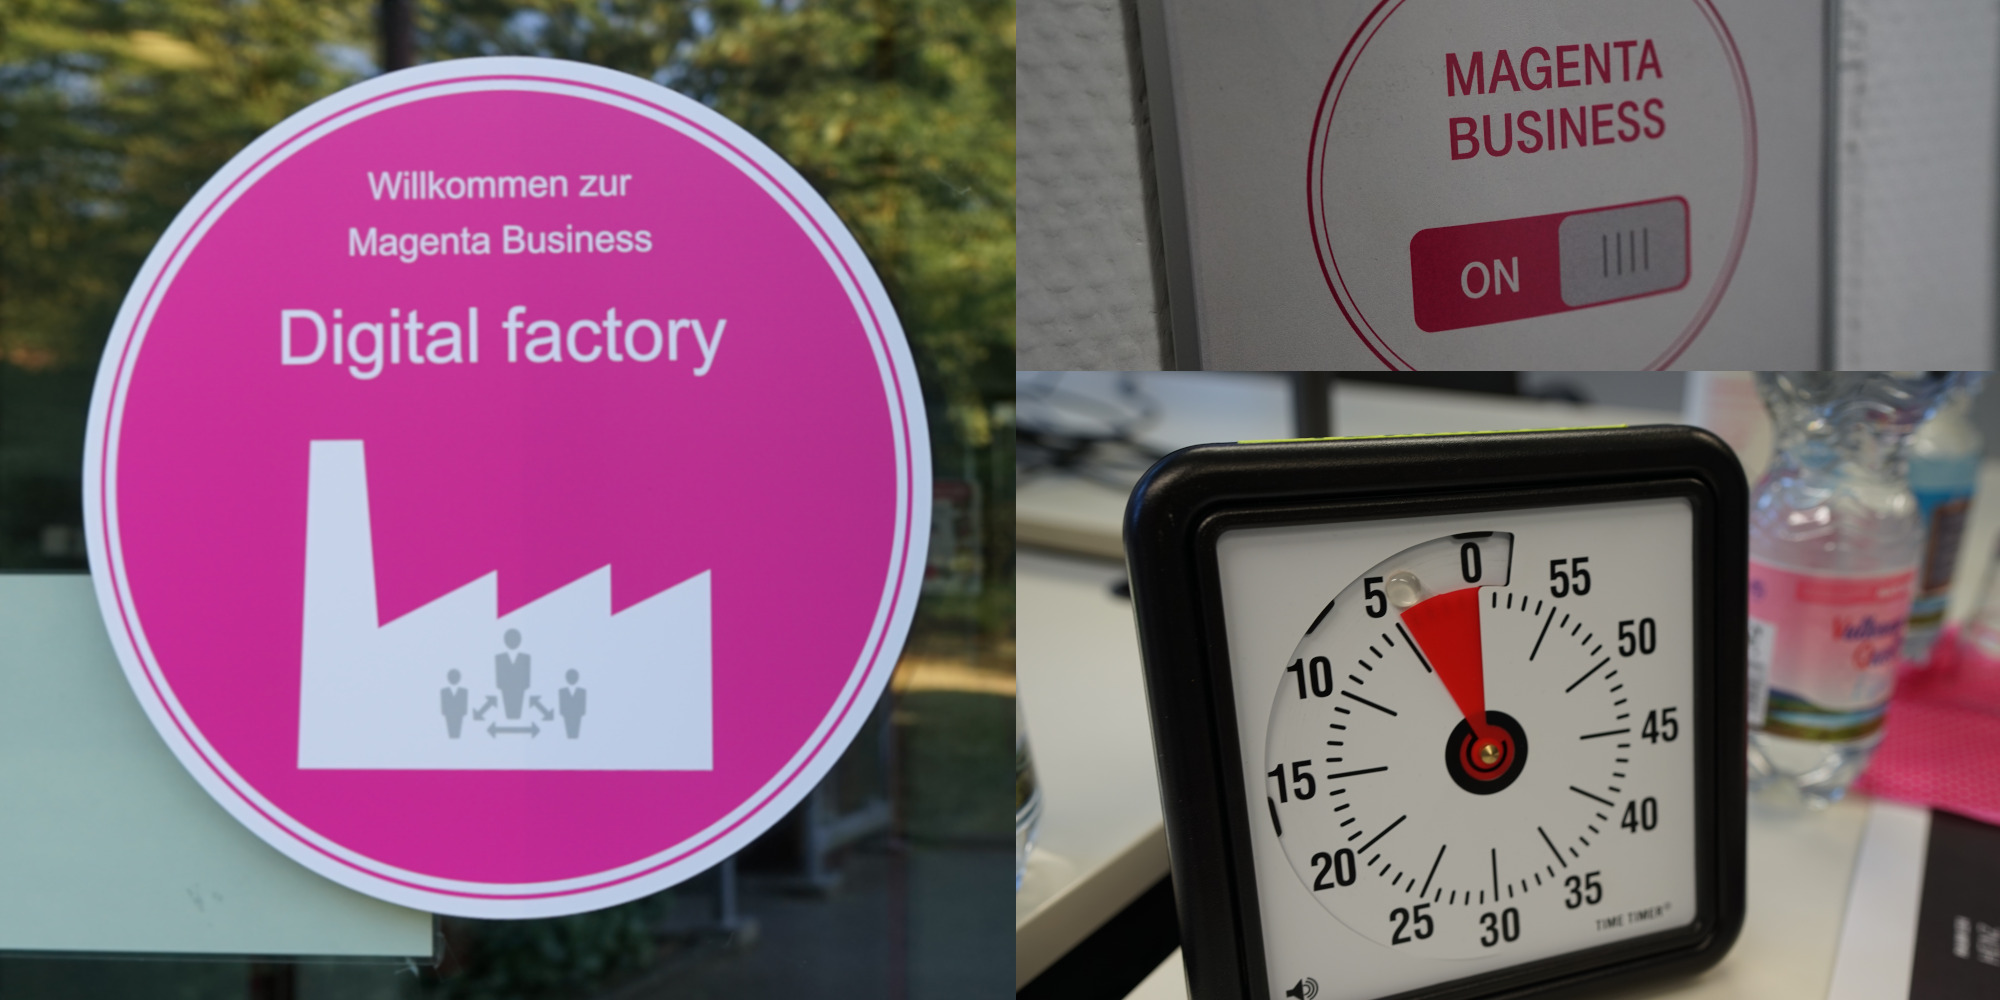 At the customer café, customers test Telekom's website with eye tracking